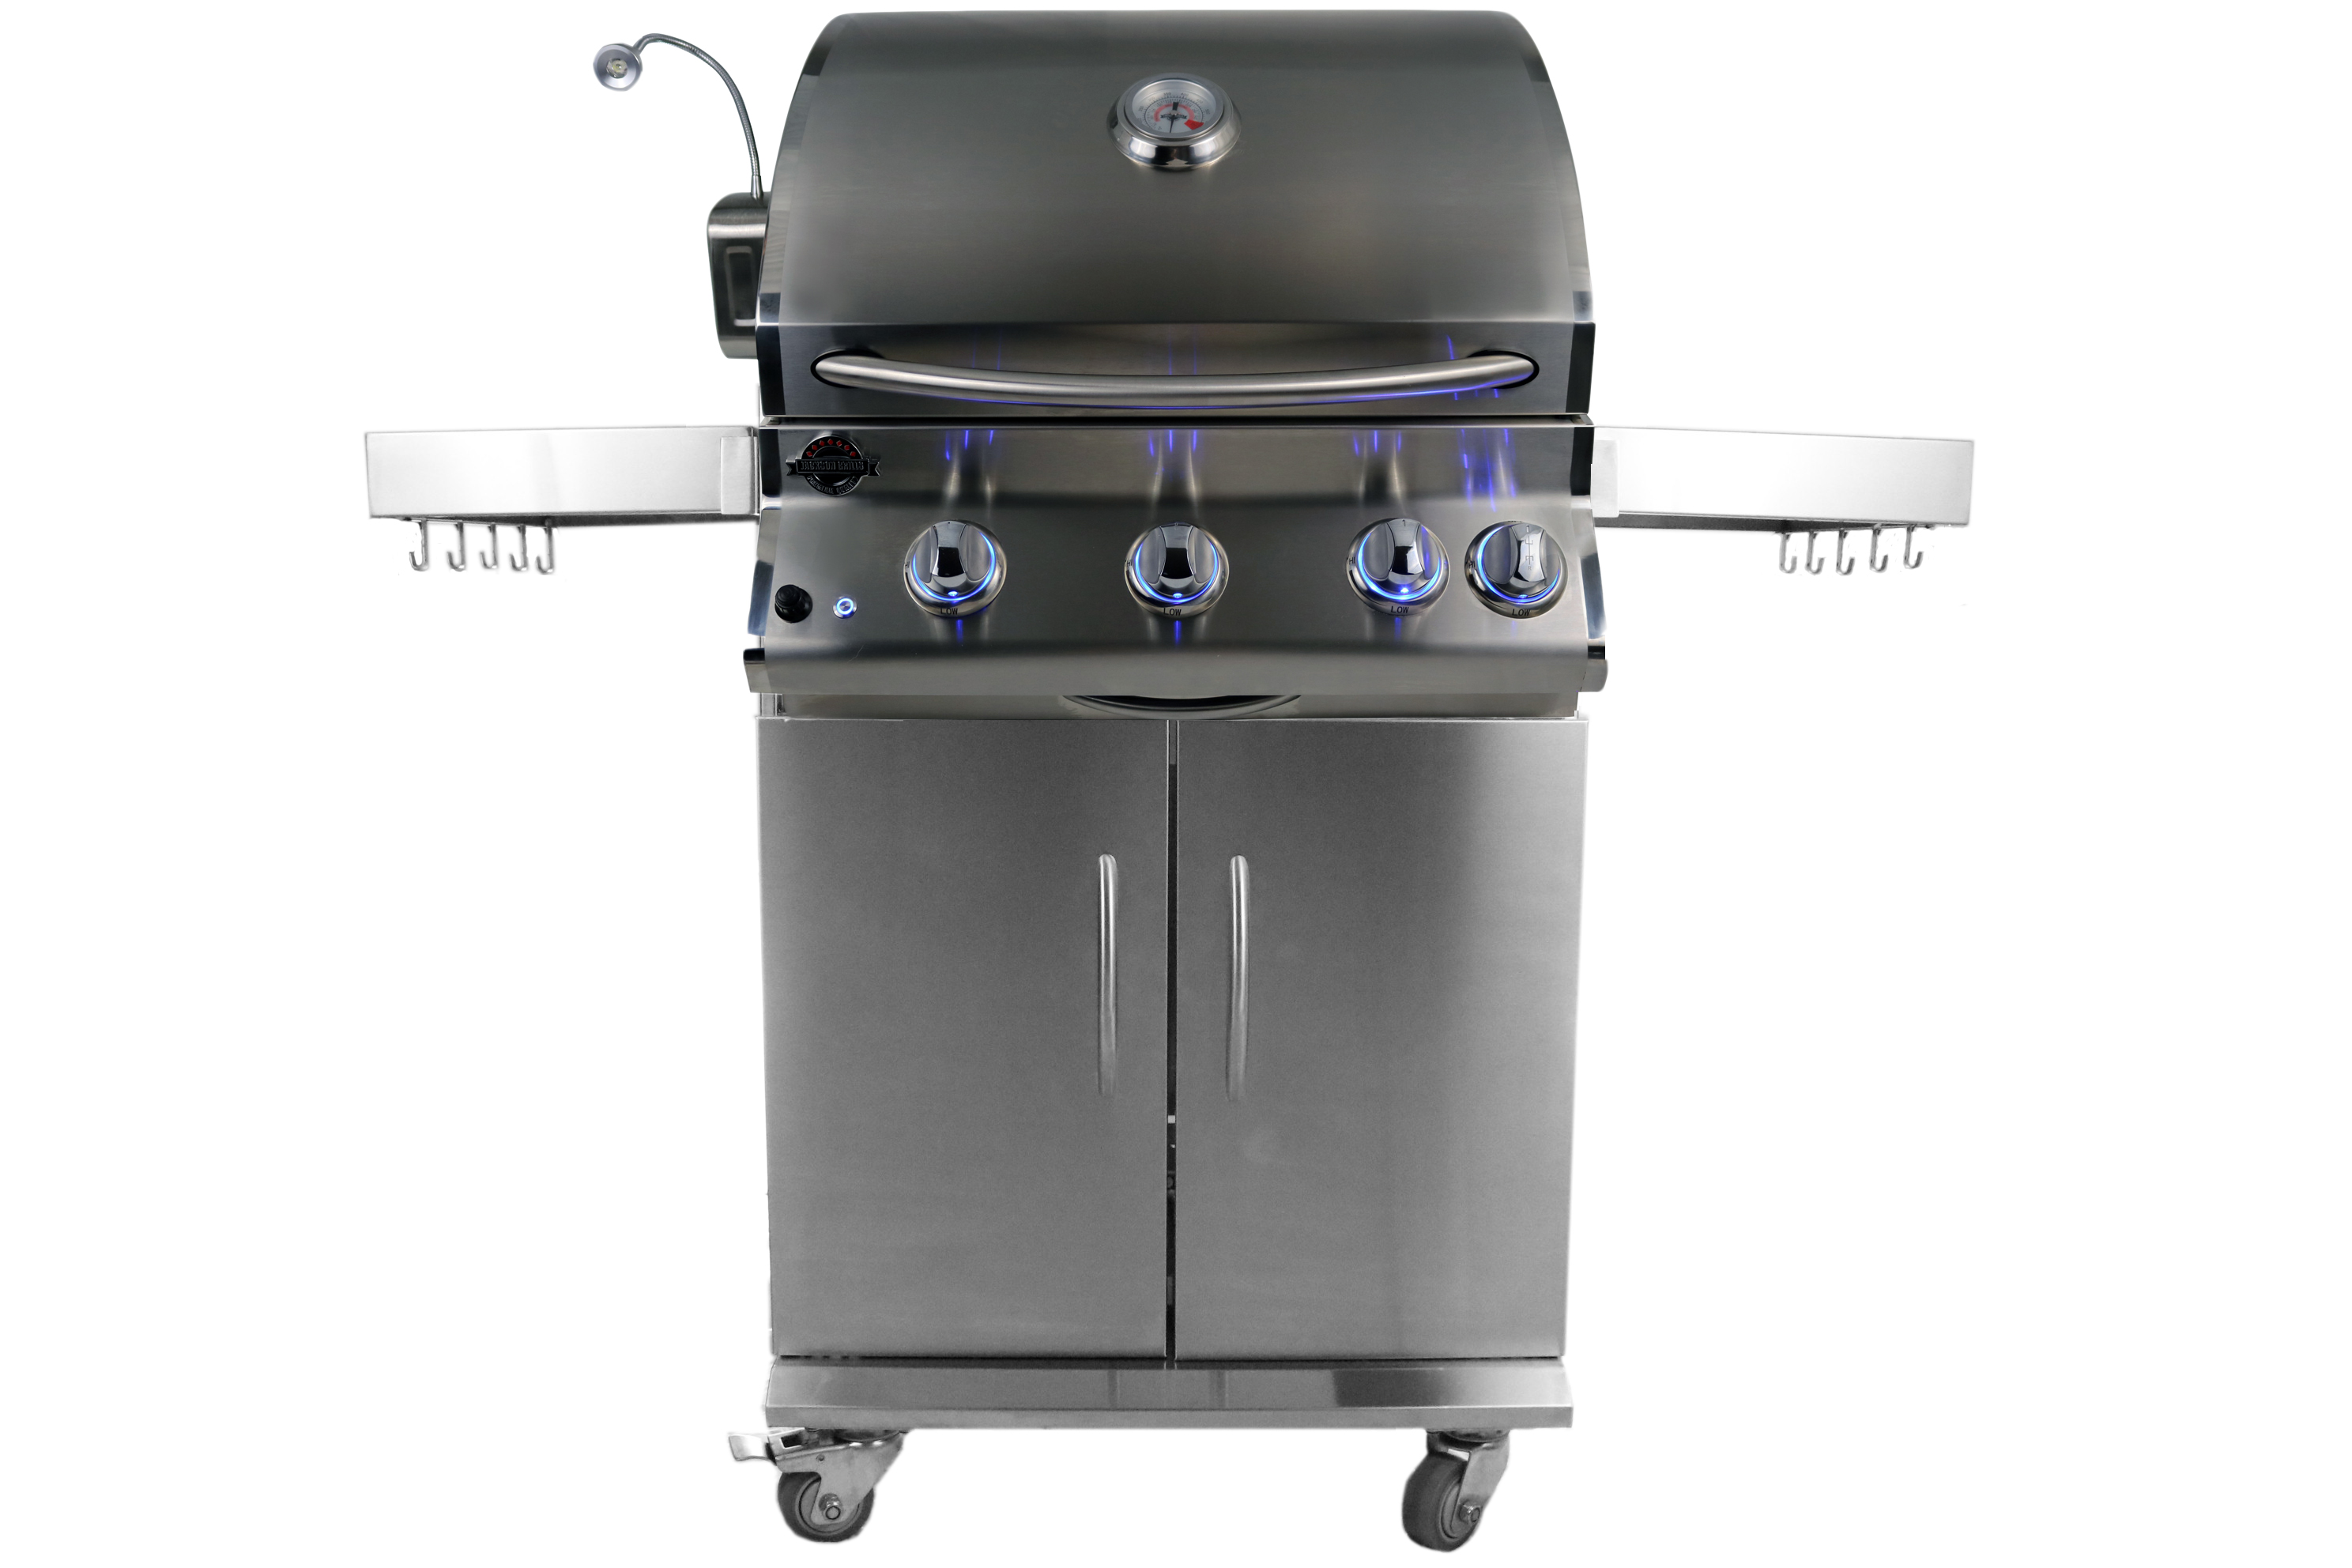 Supreme 550 stainless steel gas grill with cart